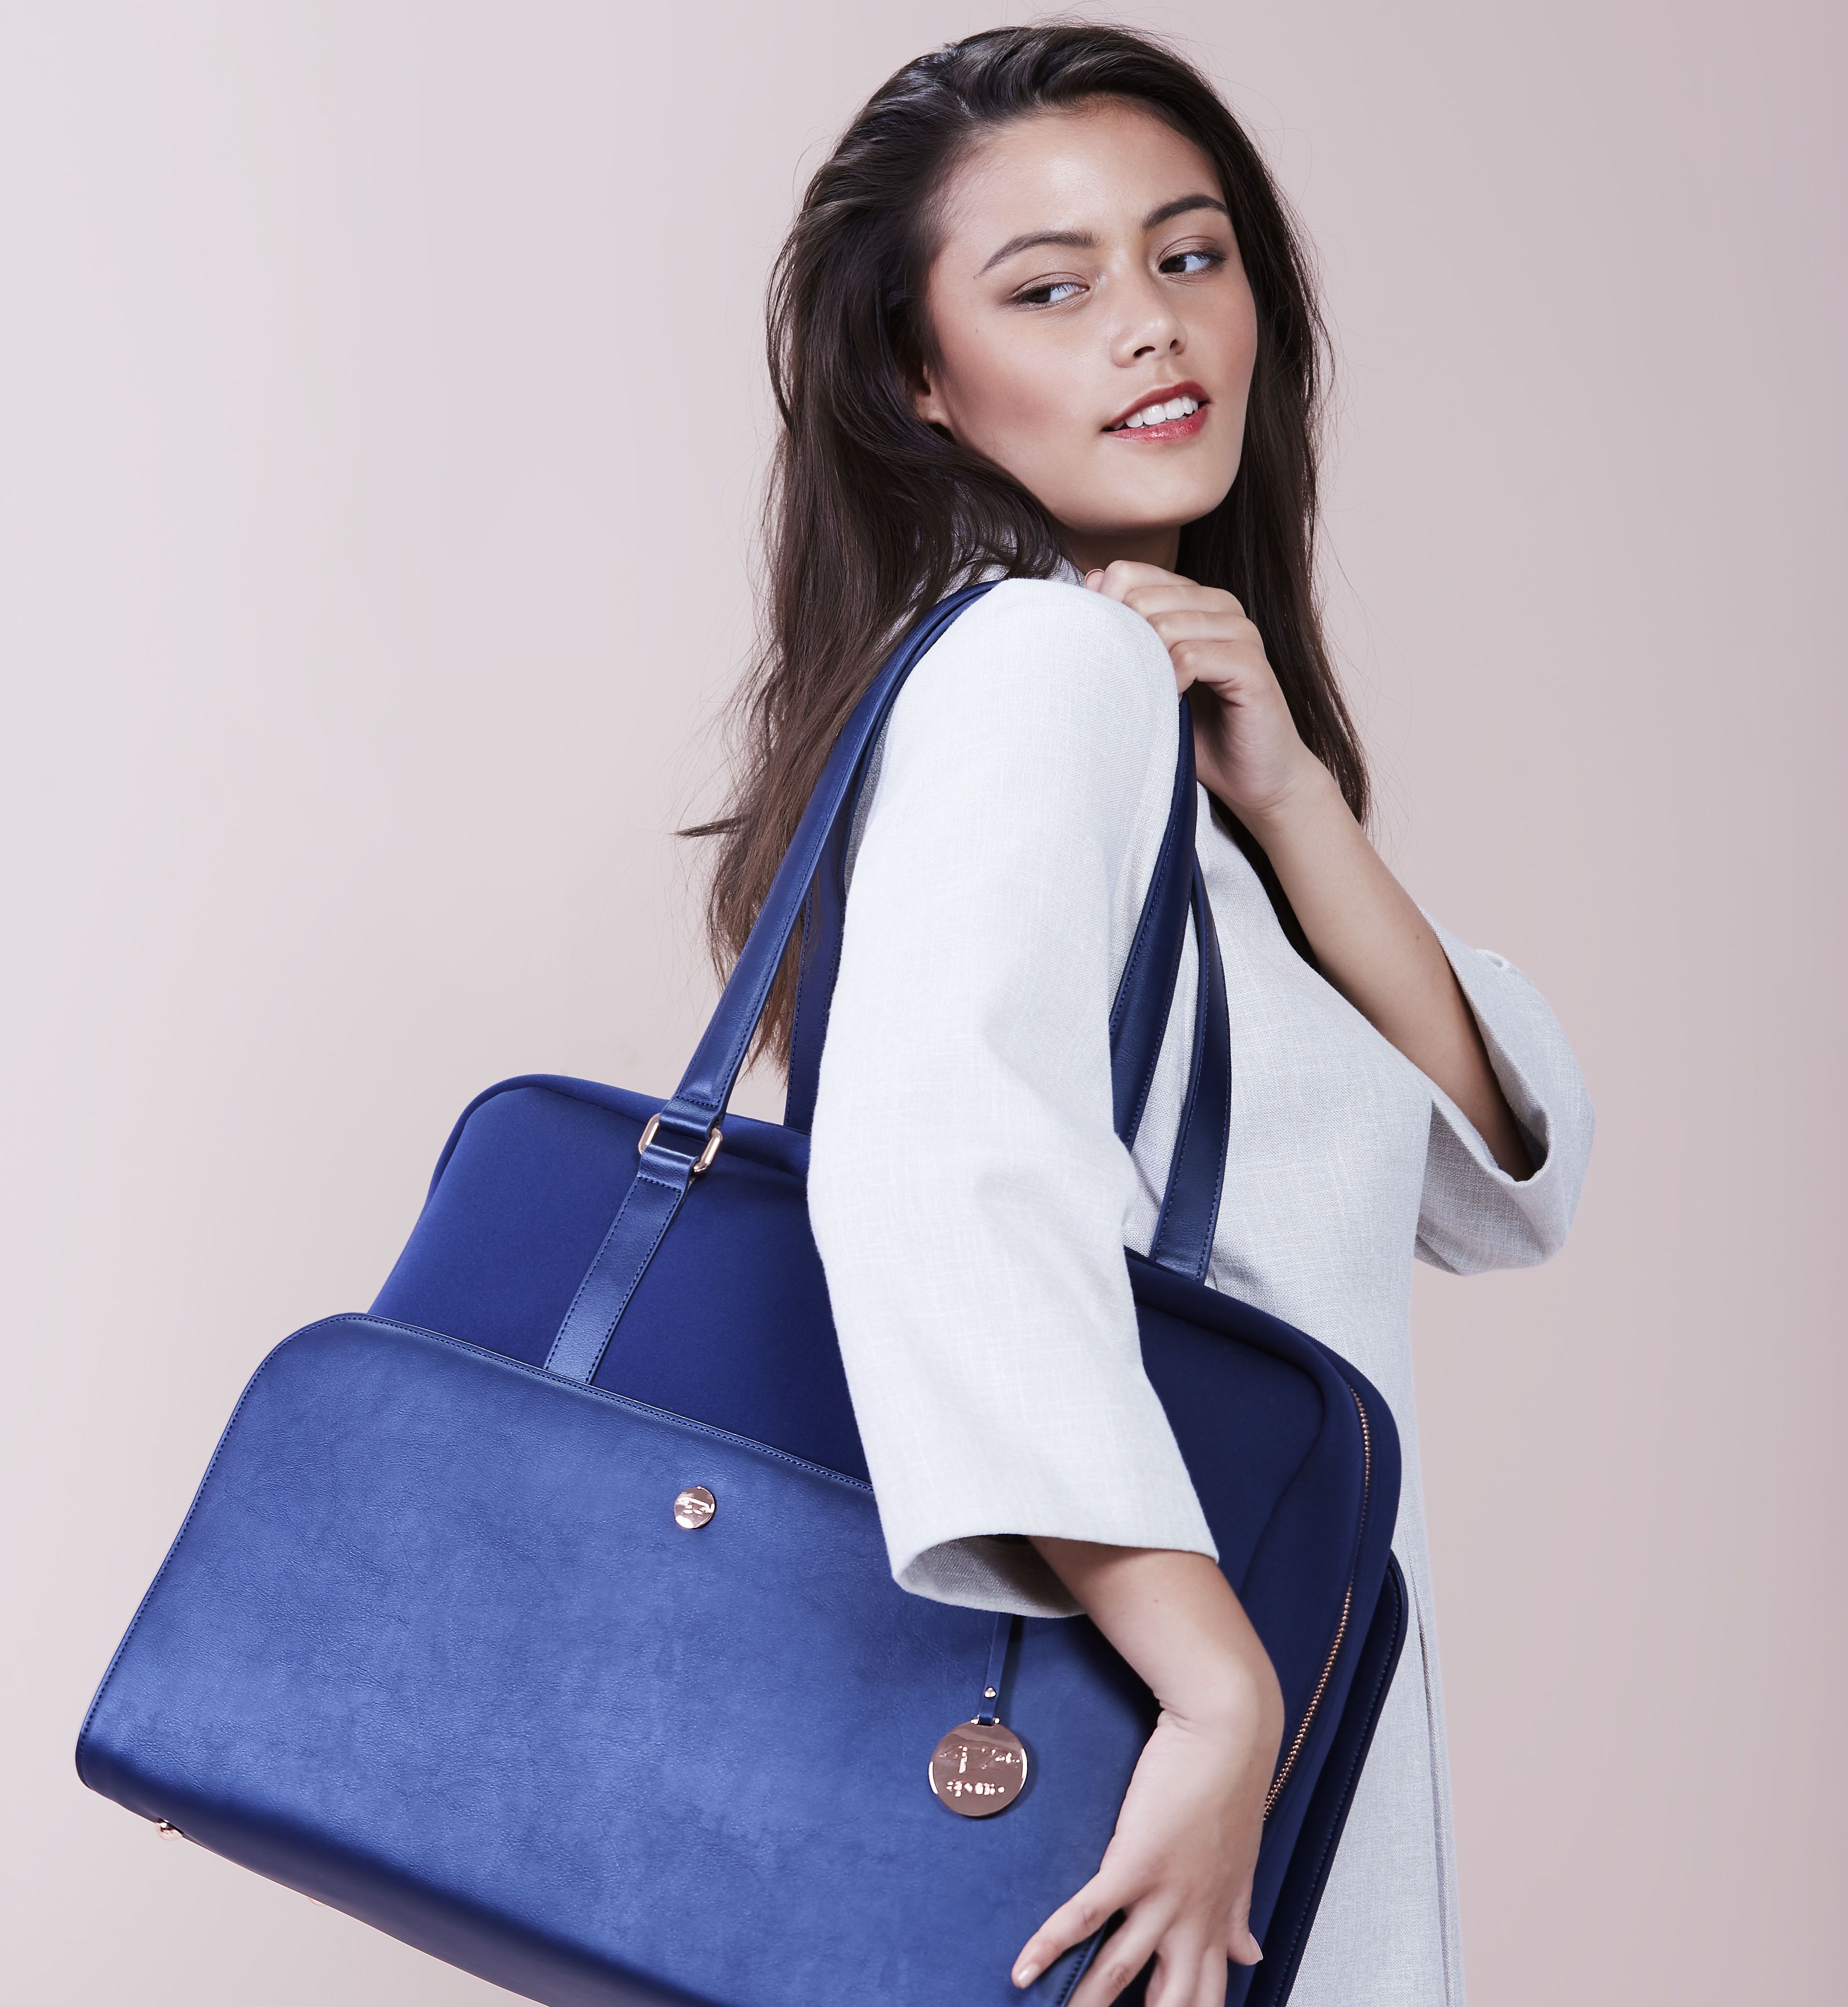 Sparro Designs Work Tote with Laptop Compartment